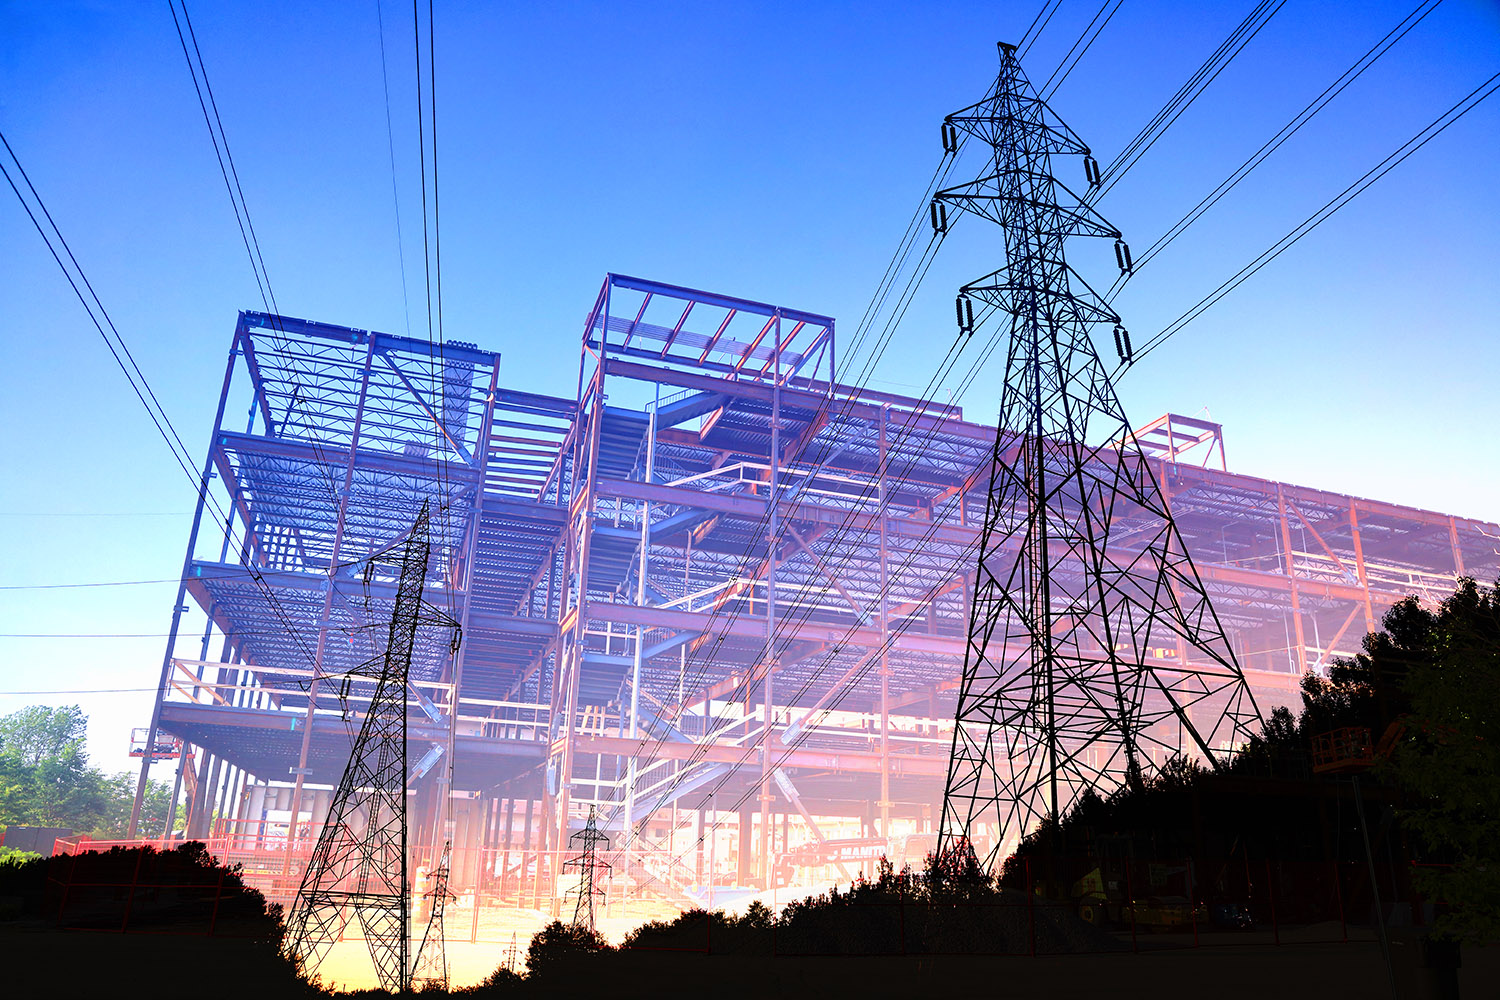 Construction Industry Electrification Concept - Stock Photos, Pictures & Images